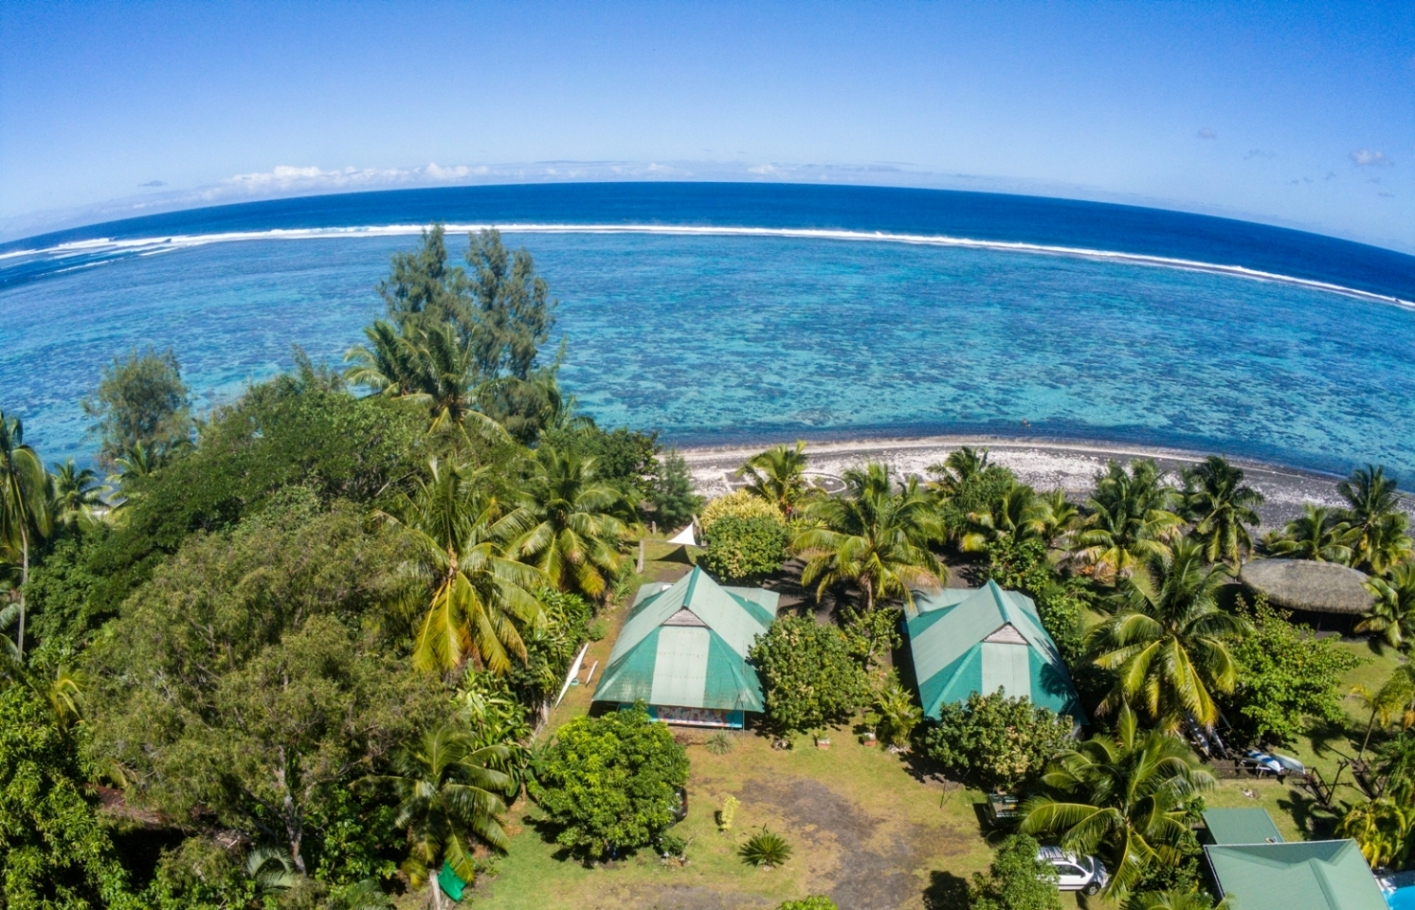 https://tahititourisme.it/wp-content/uploads/2019/08/copie-Tahiti-tourisme-948ko.jpg